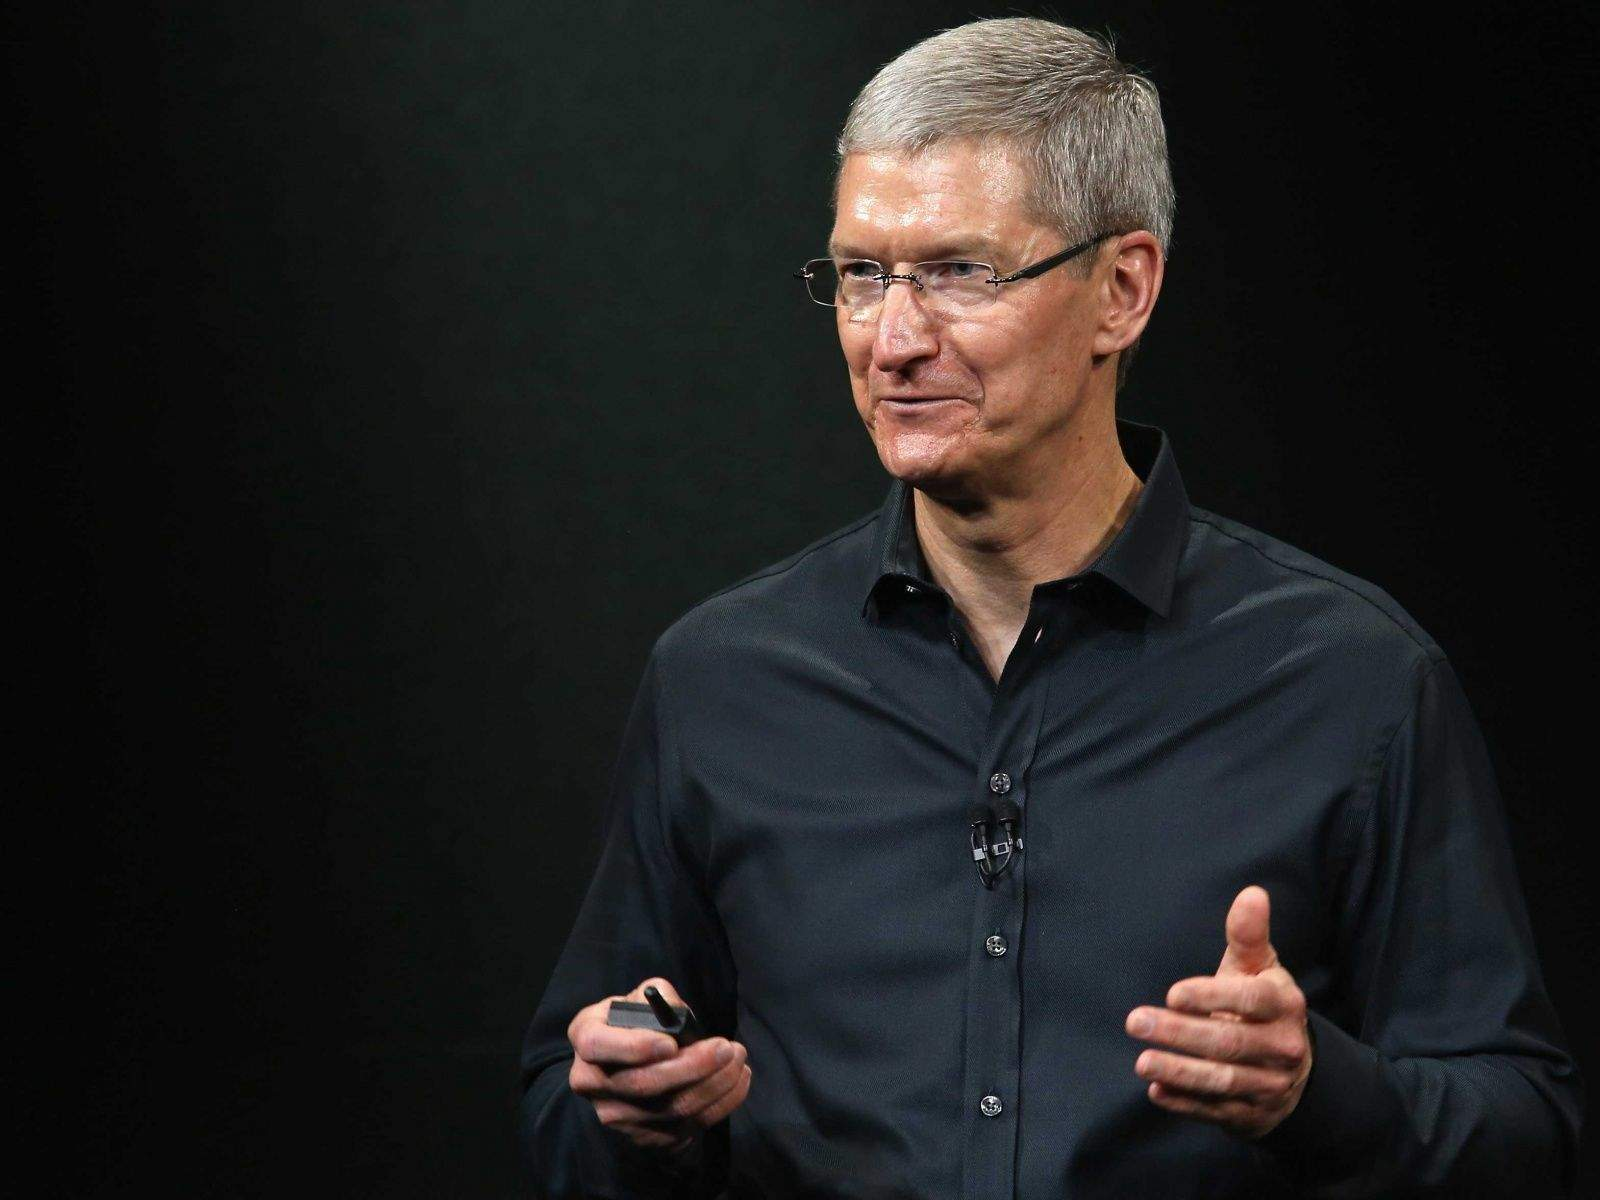 1600x1200 - Tim Cook Wallpapers 27